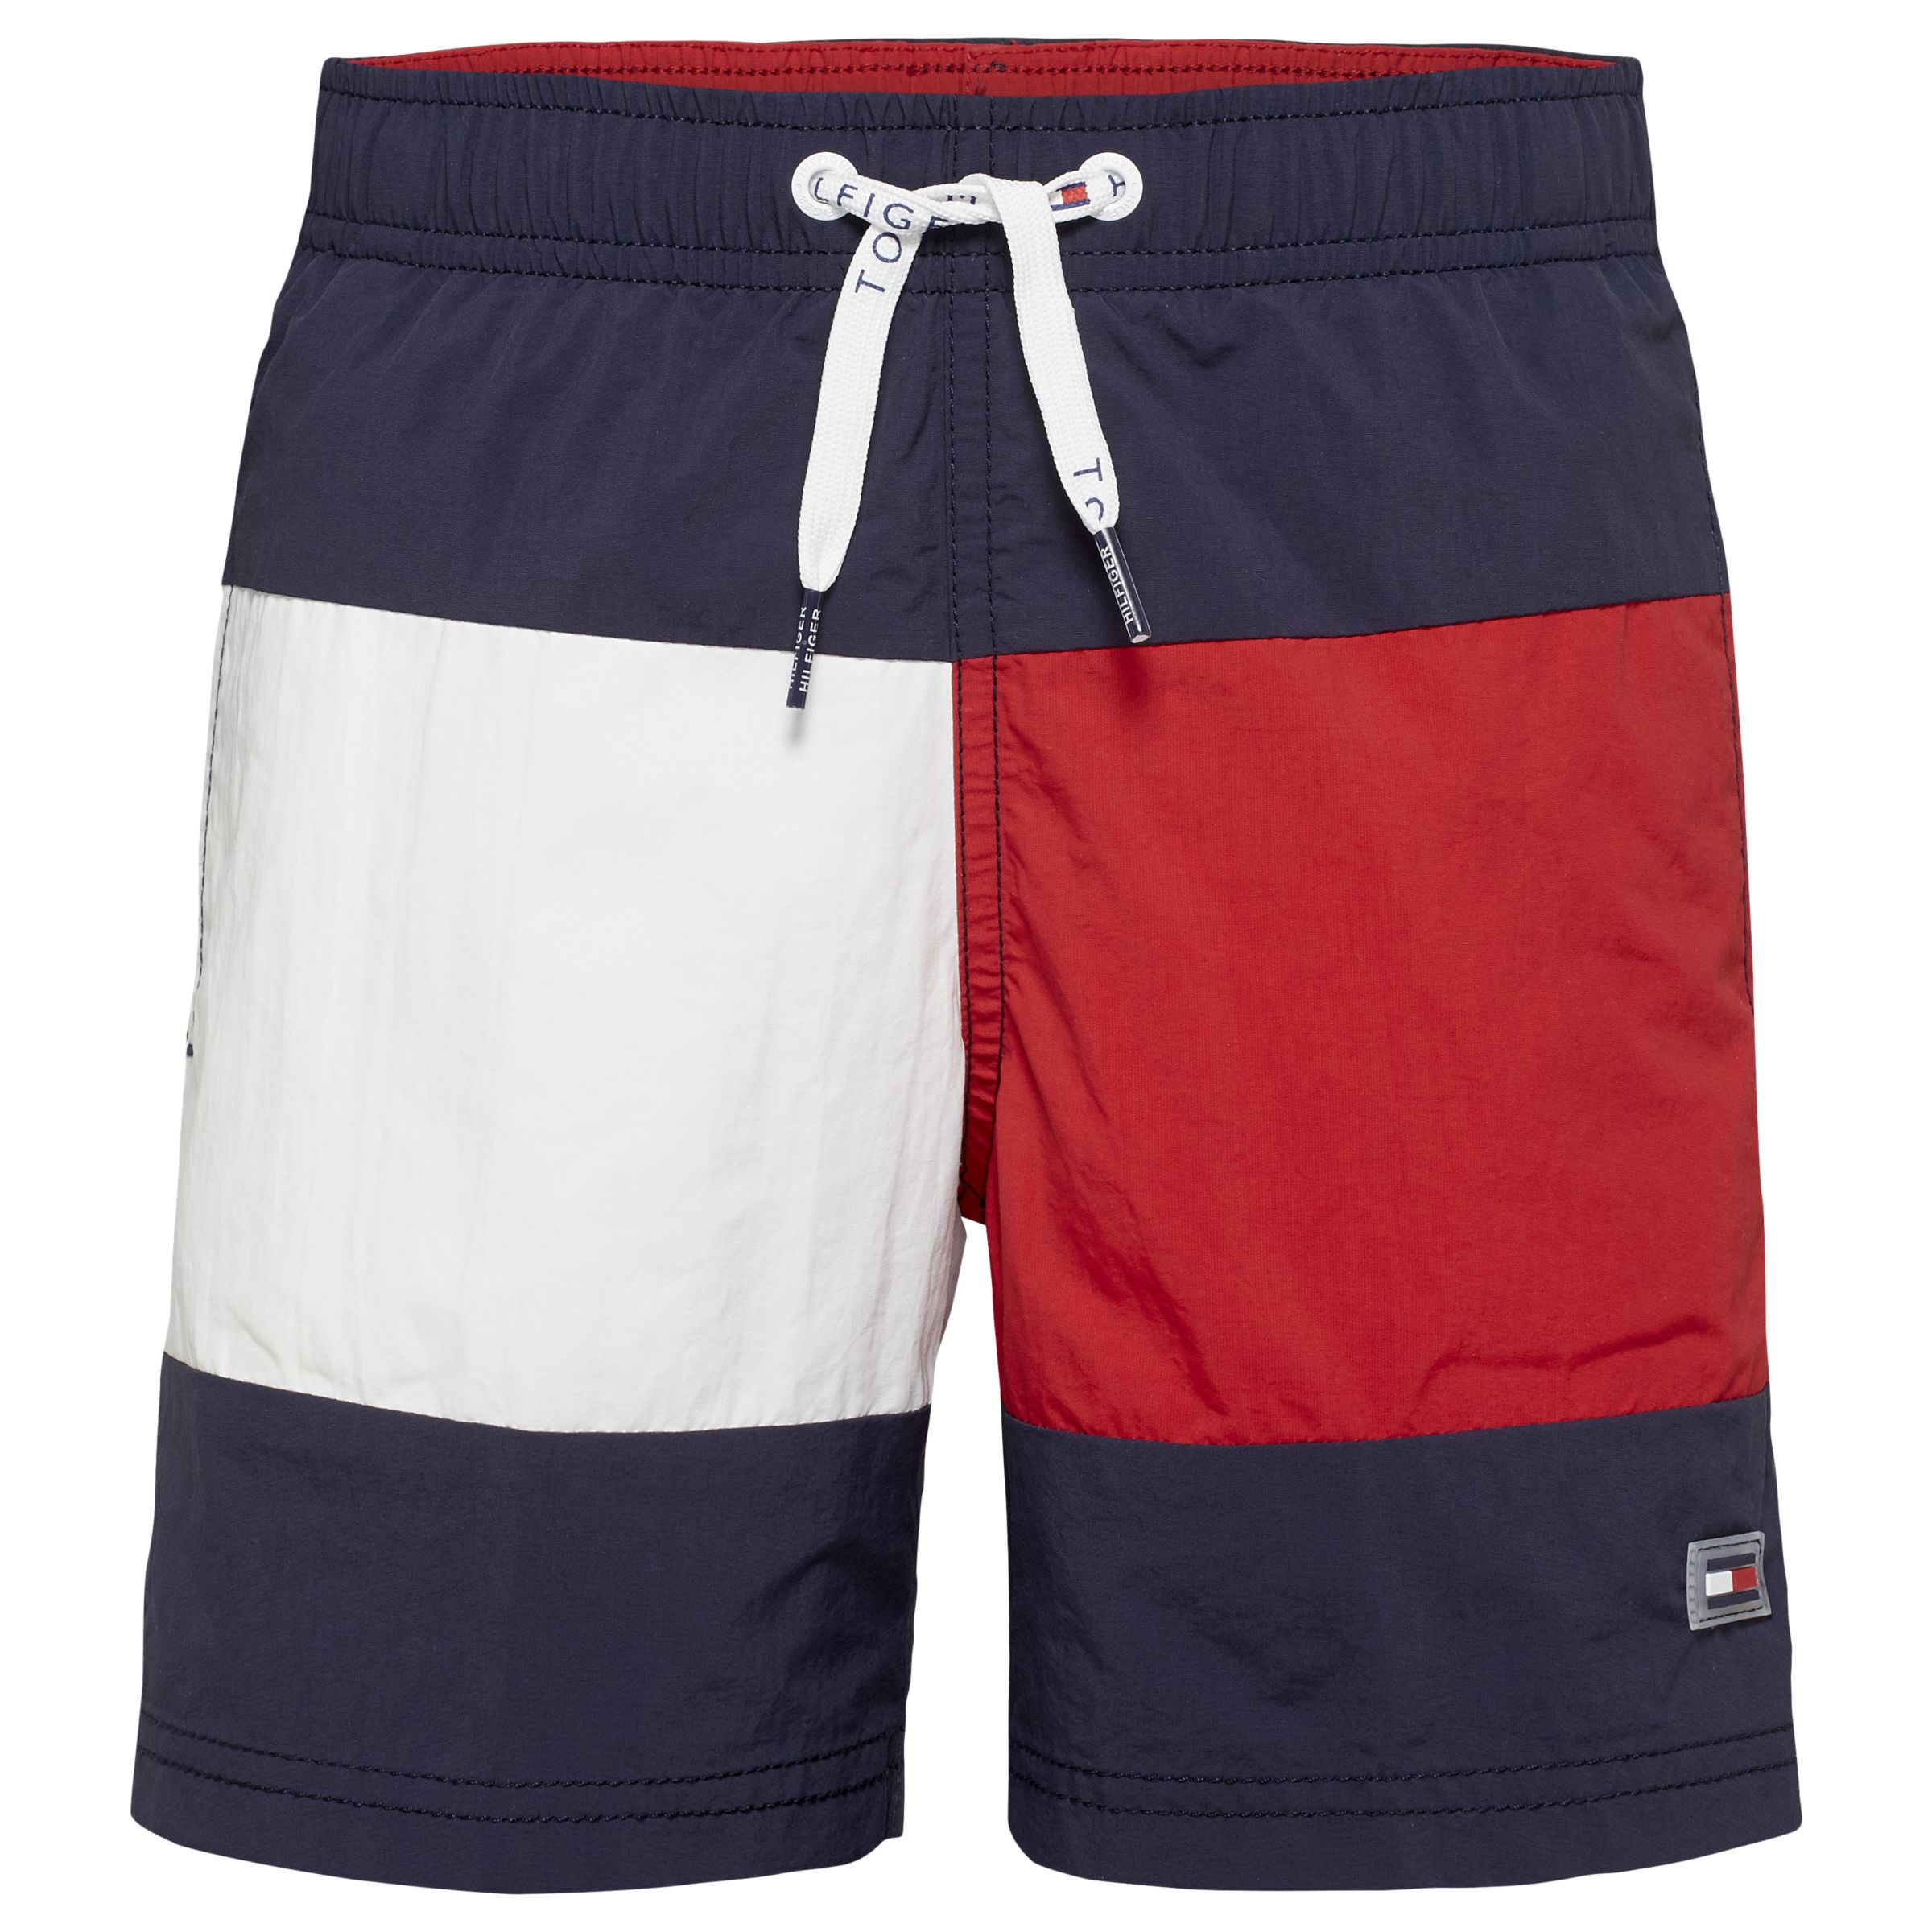 95f3e3a47a701 Tommy Hilfiger Boys' Flag Swim Shorts, Blue/Red at John Lewis & Partners